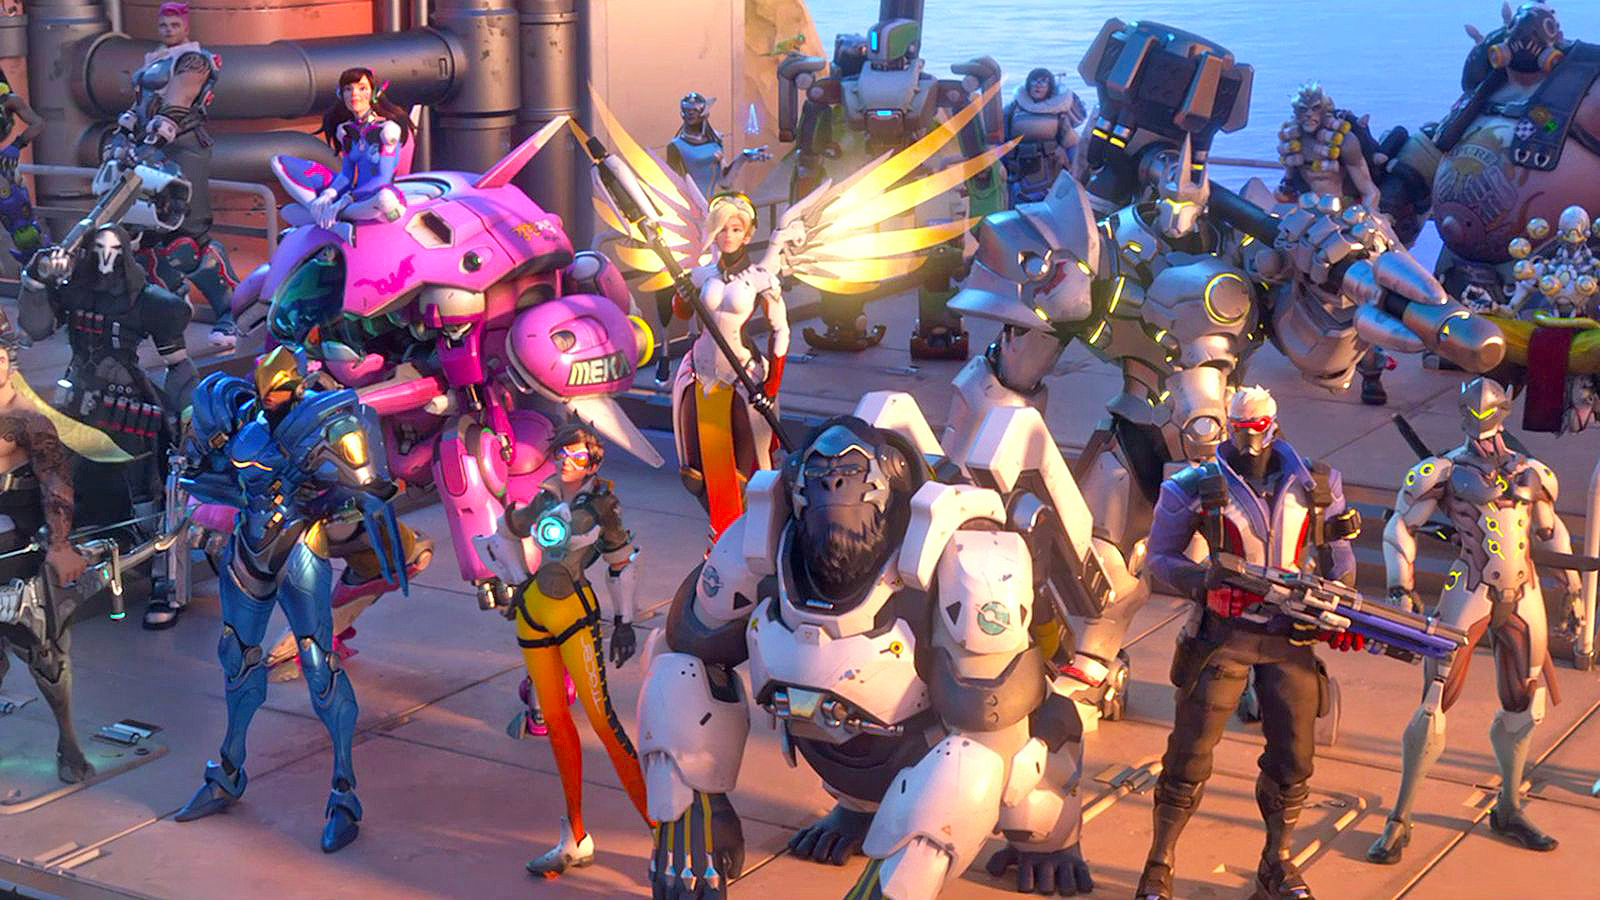 'Overwatch' is free to play this holiday weekend